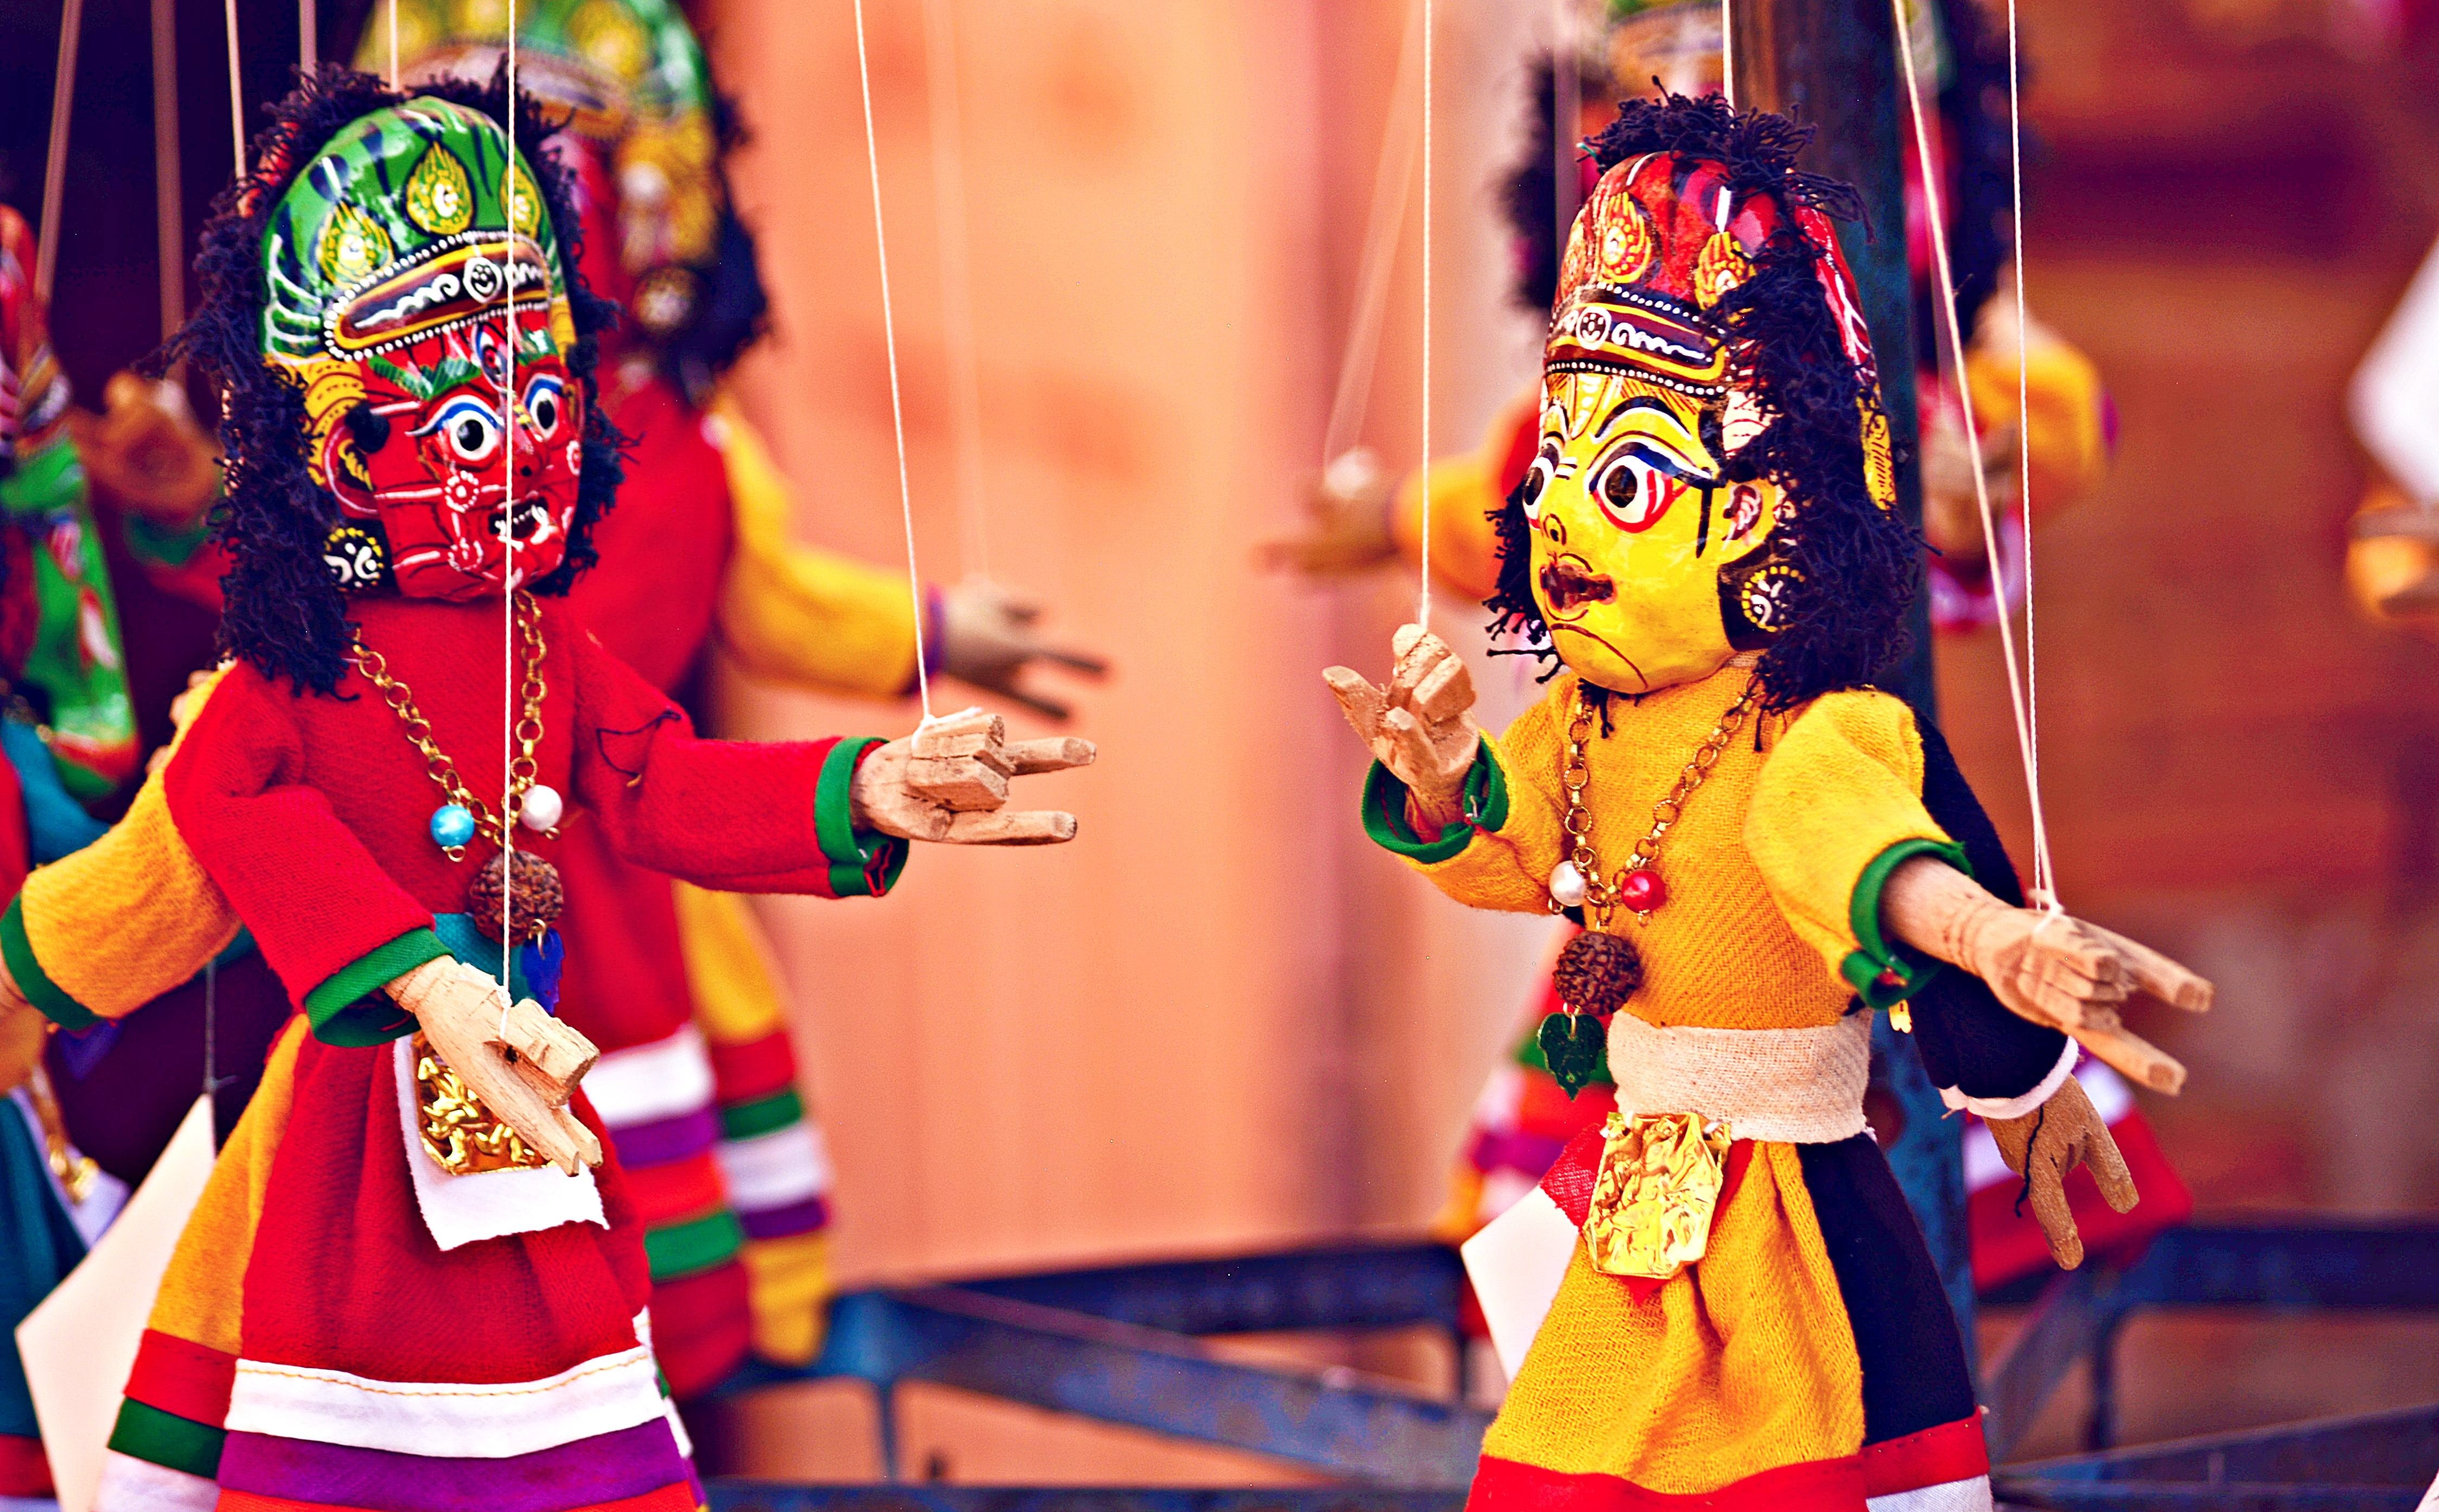 A cast of ornate puppets on strings acting out a play